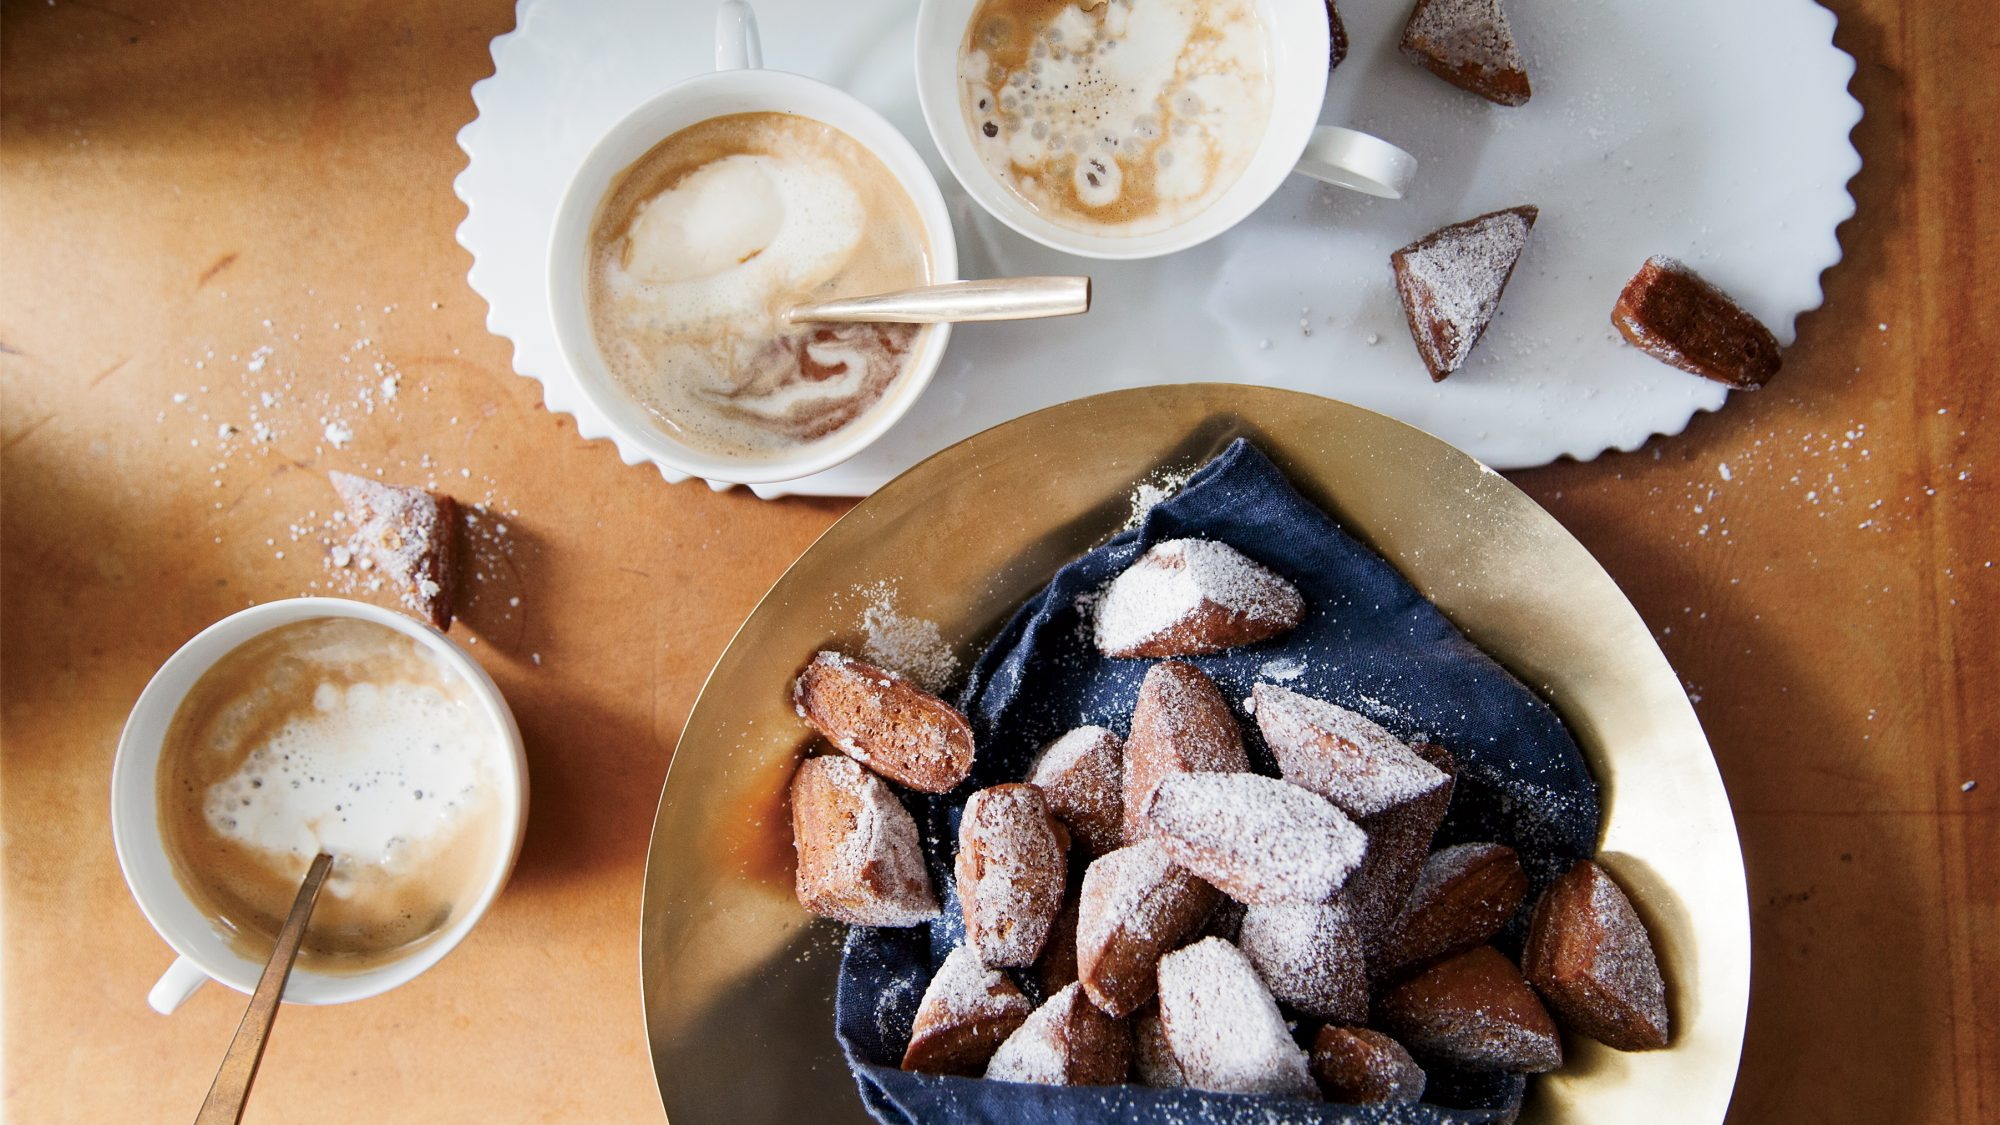 10 Desserts for Coffee Addicts